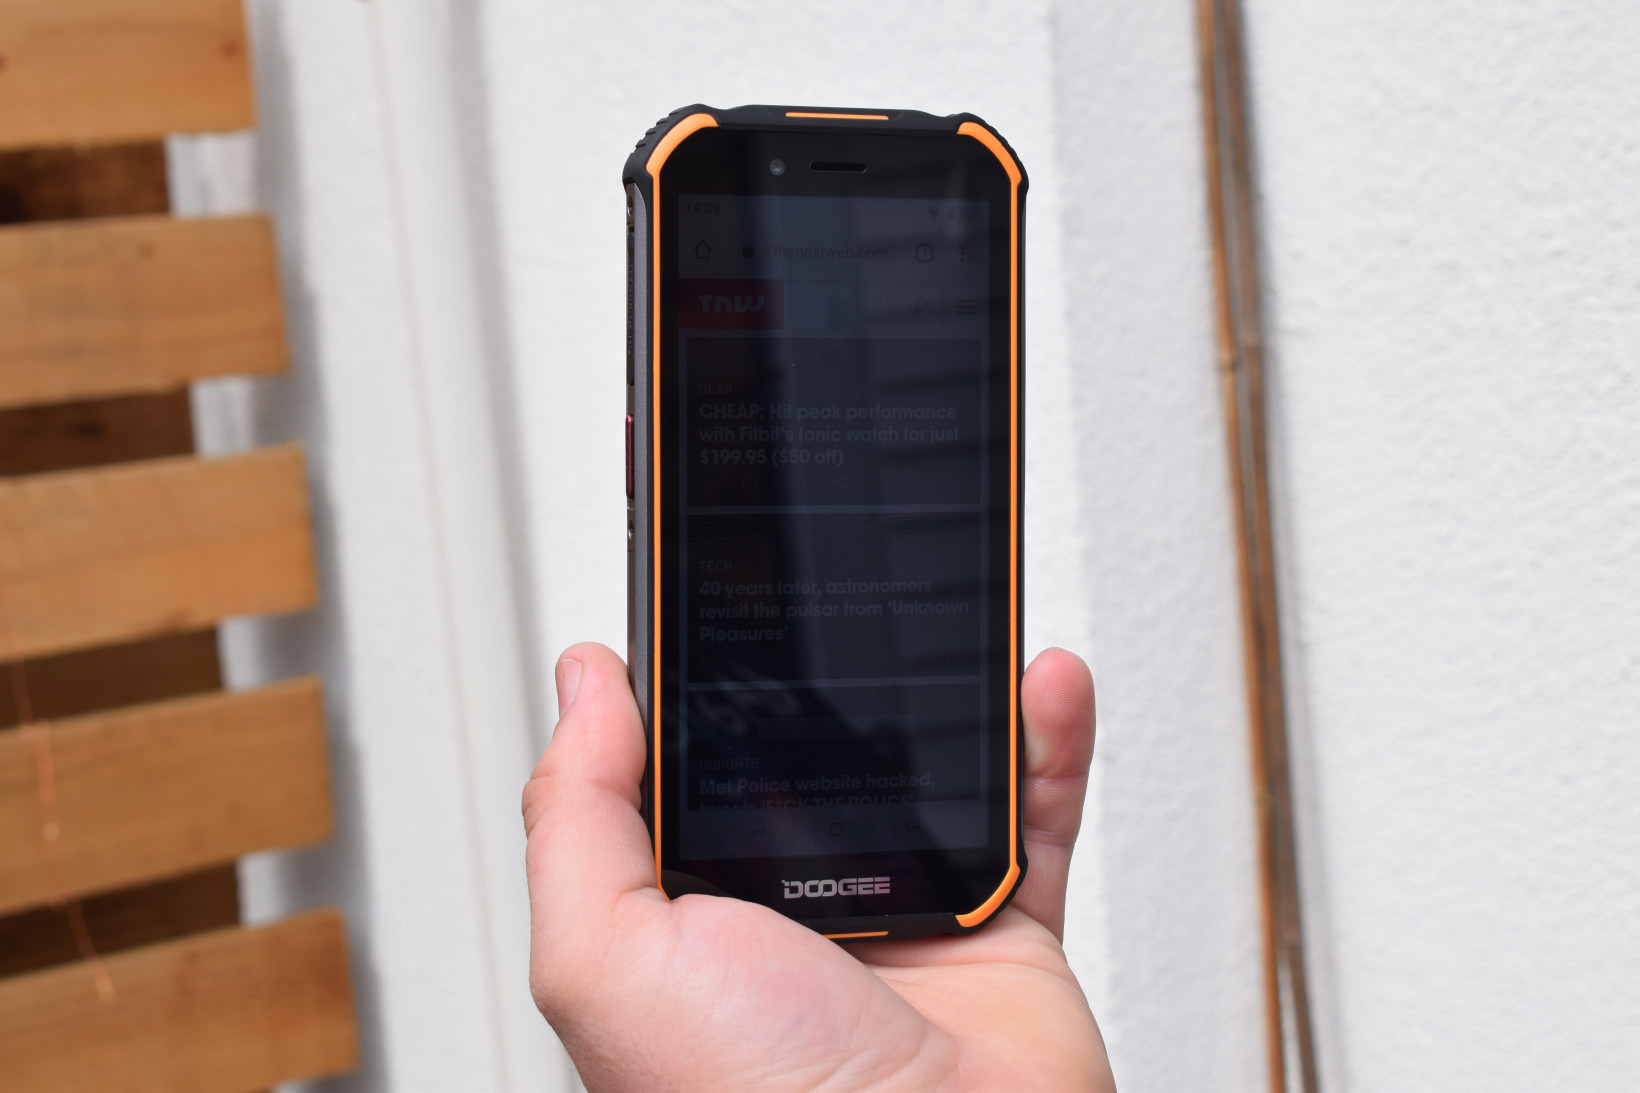 Review: The Doogee S40 is a rugged phone you'll want to